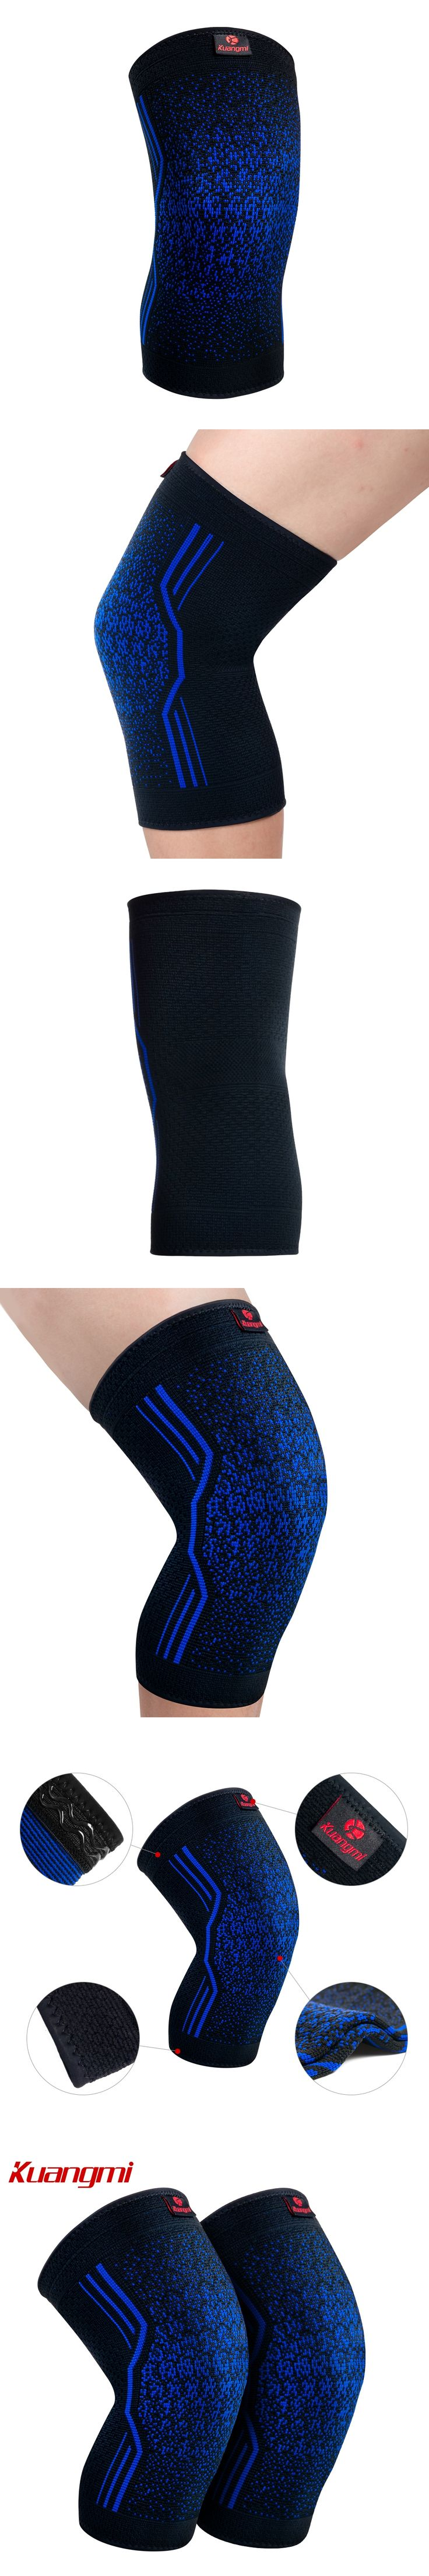 Kuangmi 1 Pair Knee Pads Silicone Non-slip Volleyball Knee Sleeve Elastic Knee Brace Support Sports knee Protector Basketball